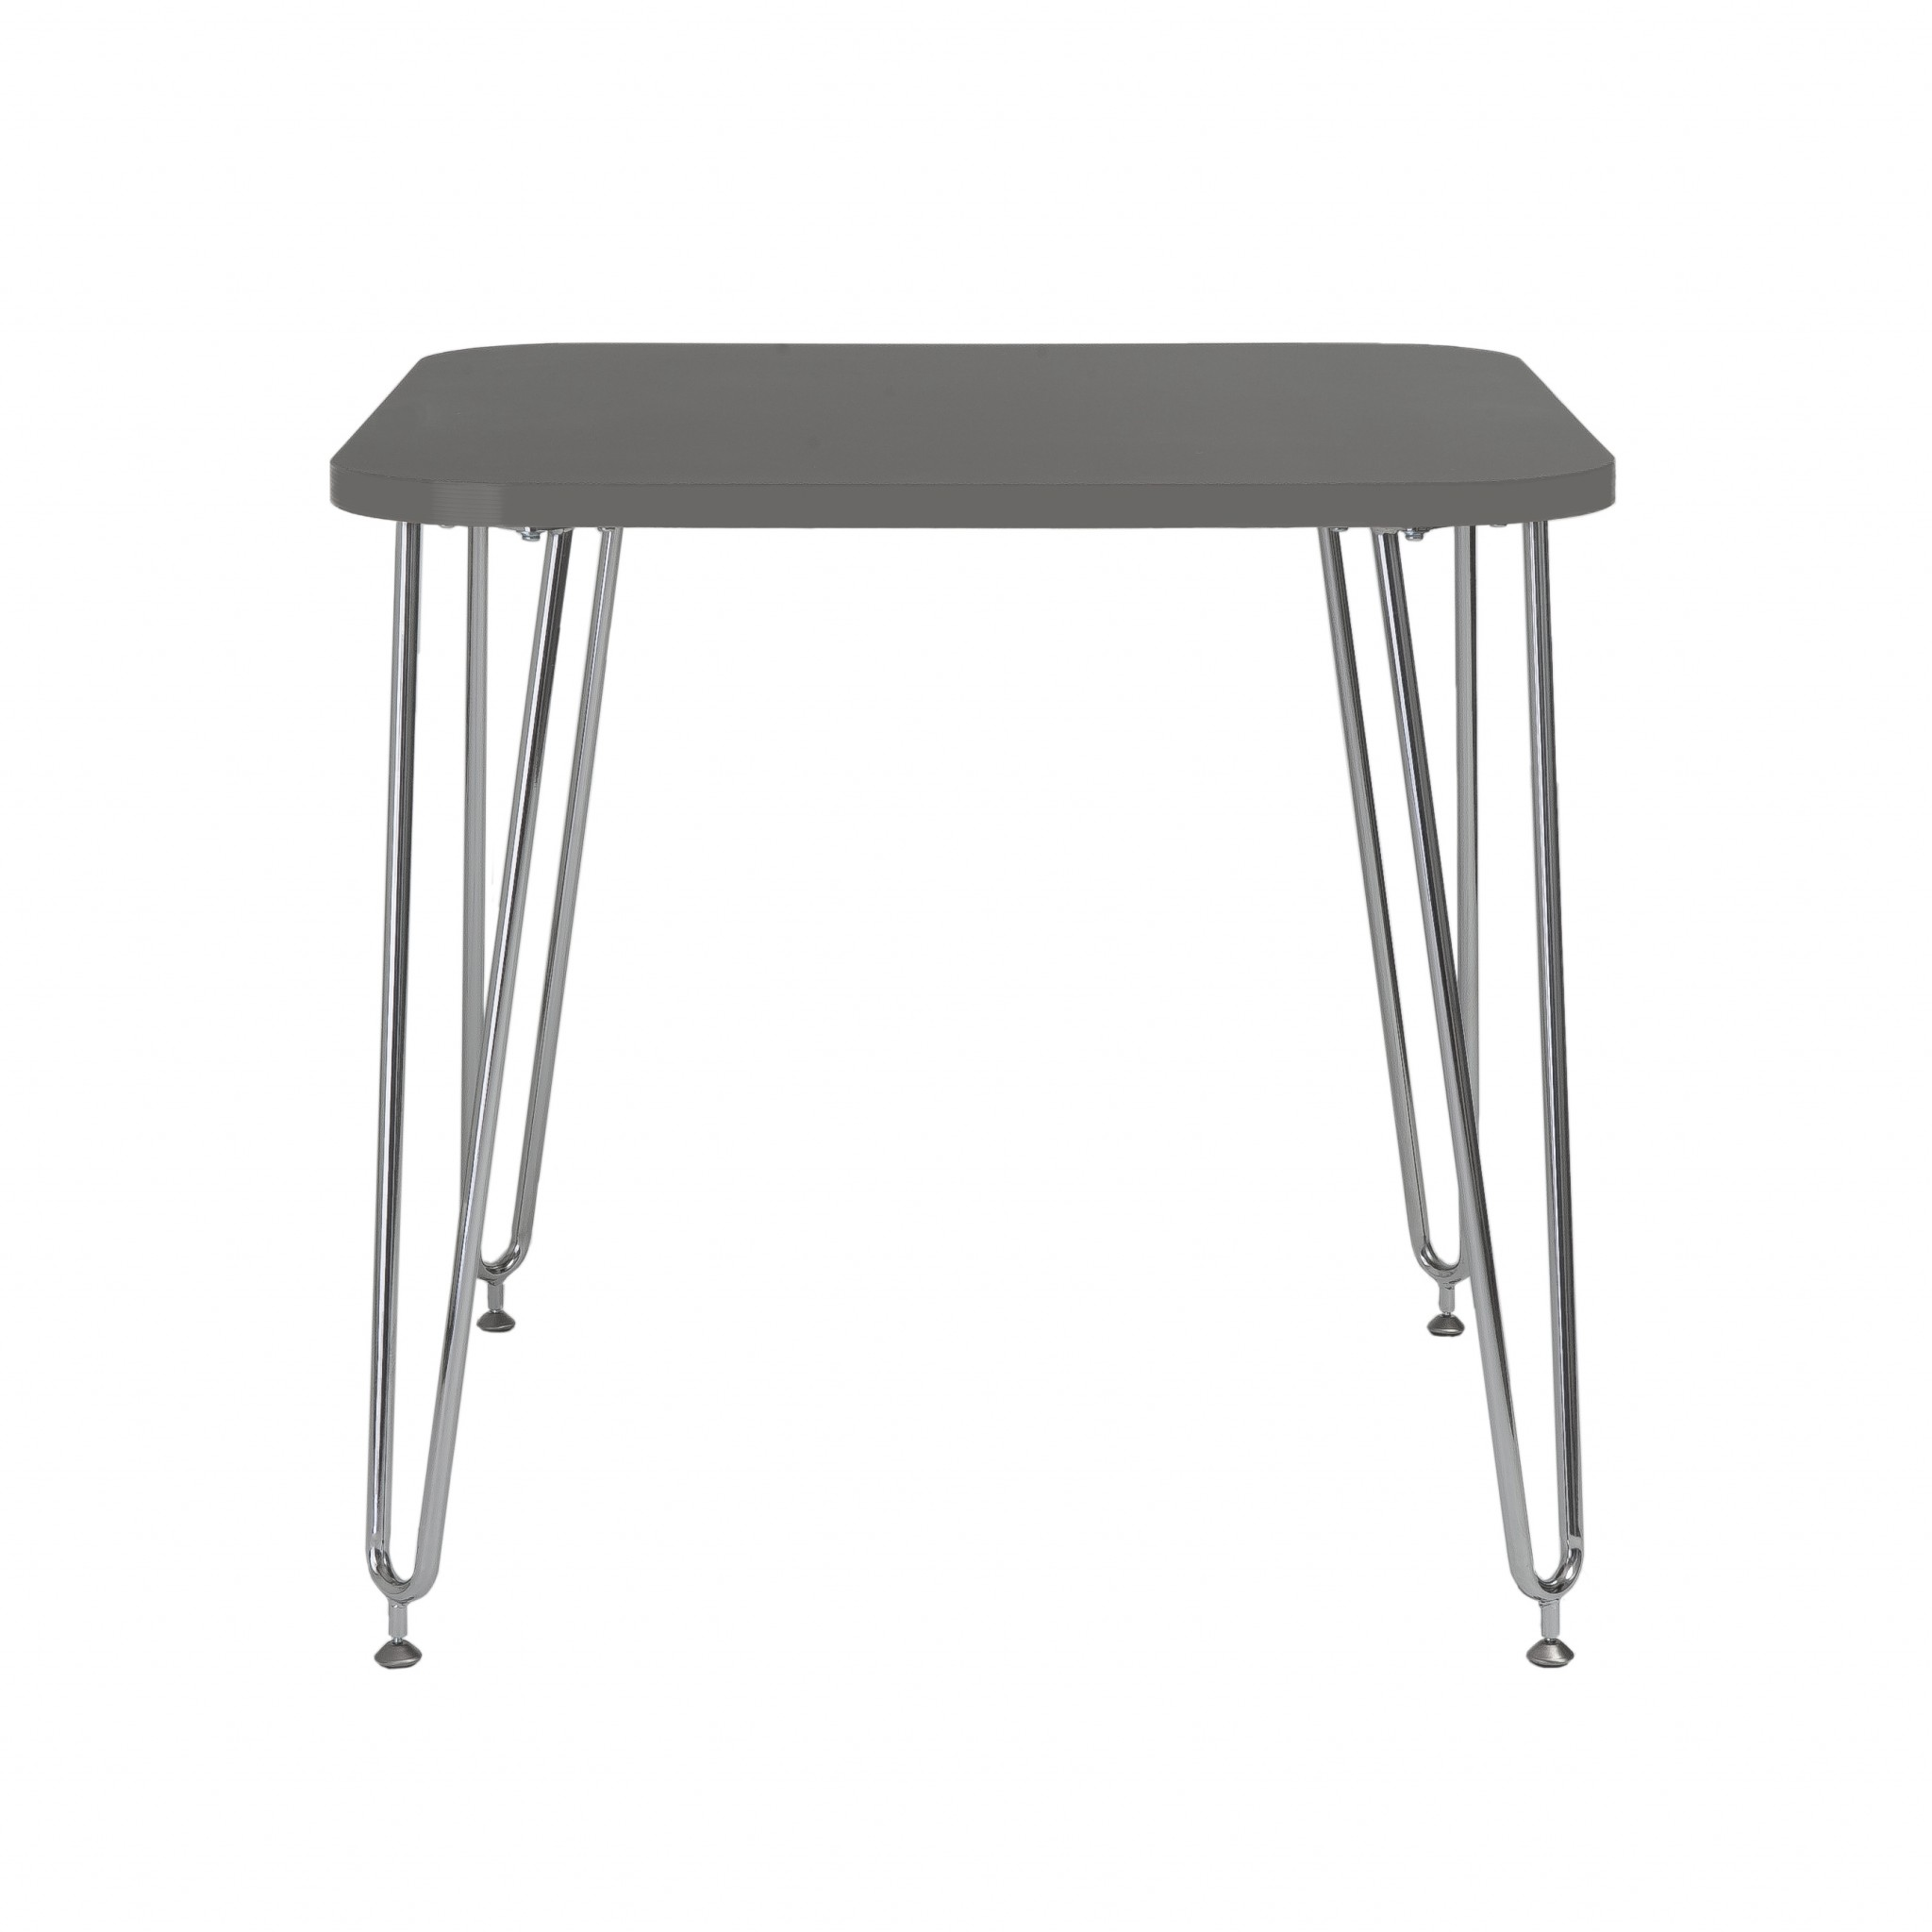 """31.5"""" X 31.5"""" X 30"""" Gray Melamine over Particle Board Activity Table with Chrome Legs"""